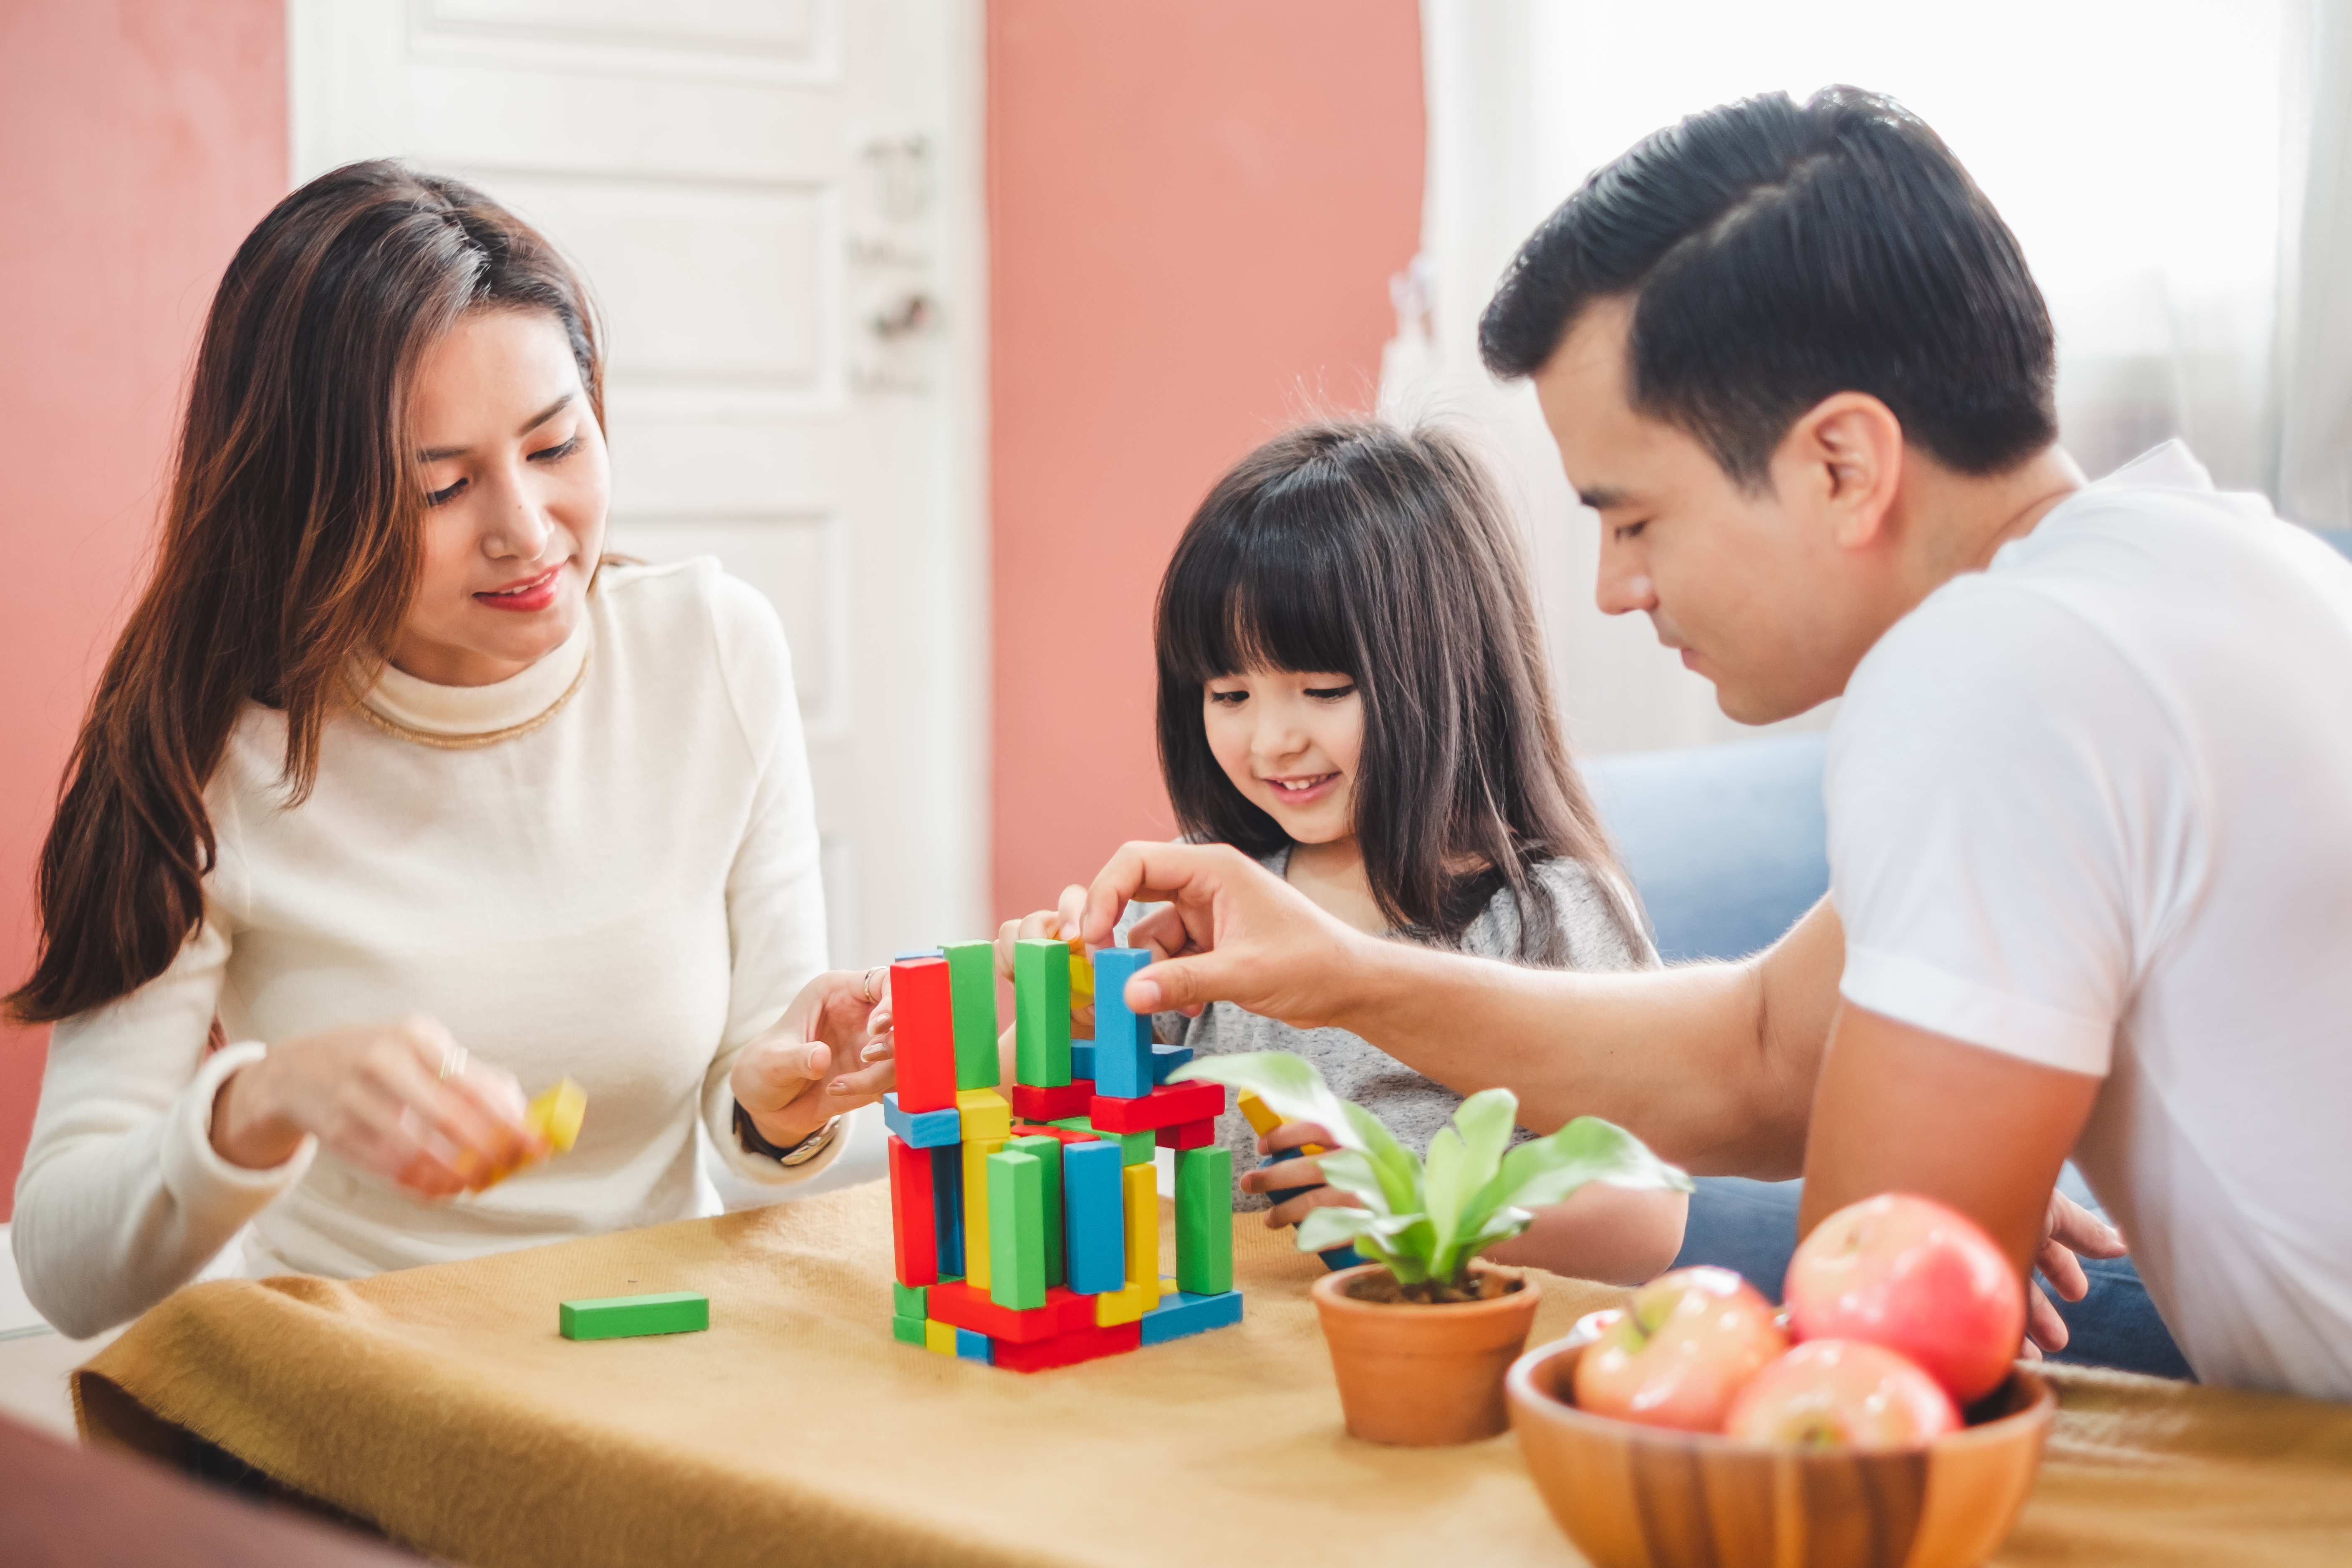 staying home activities for family image